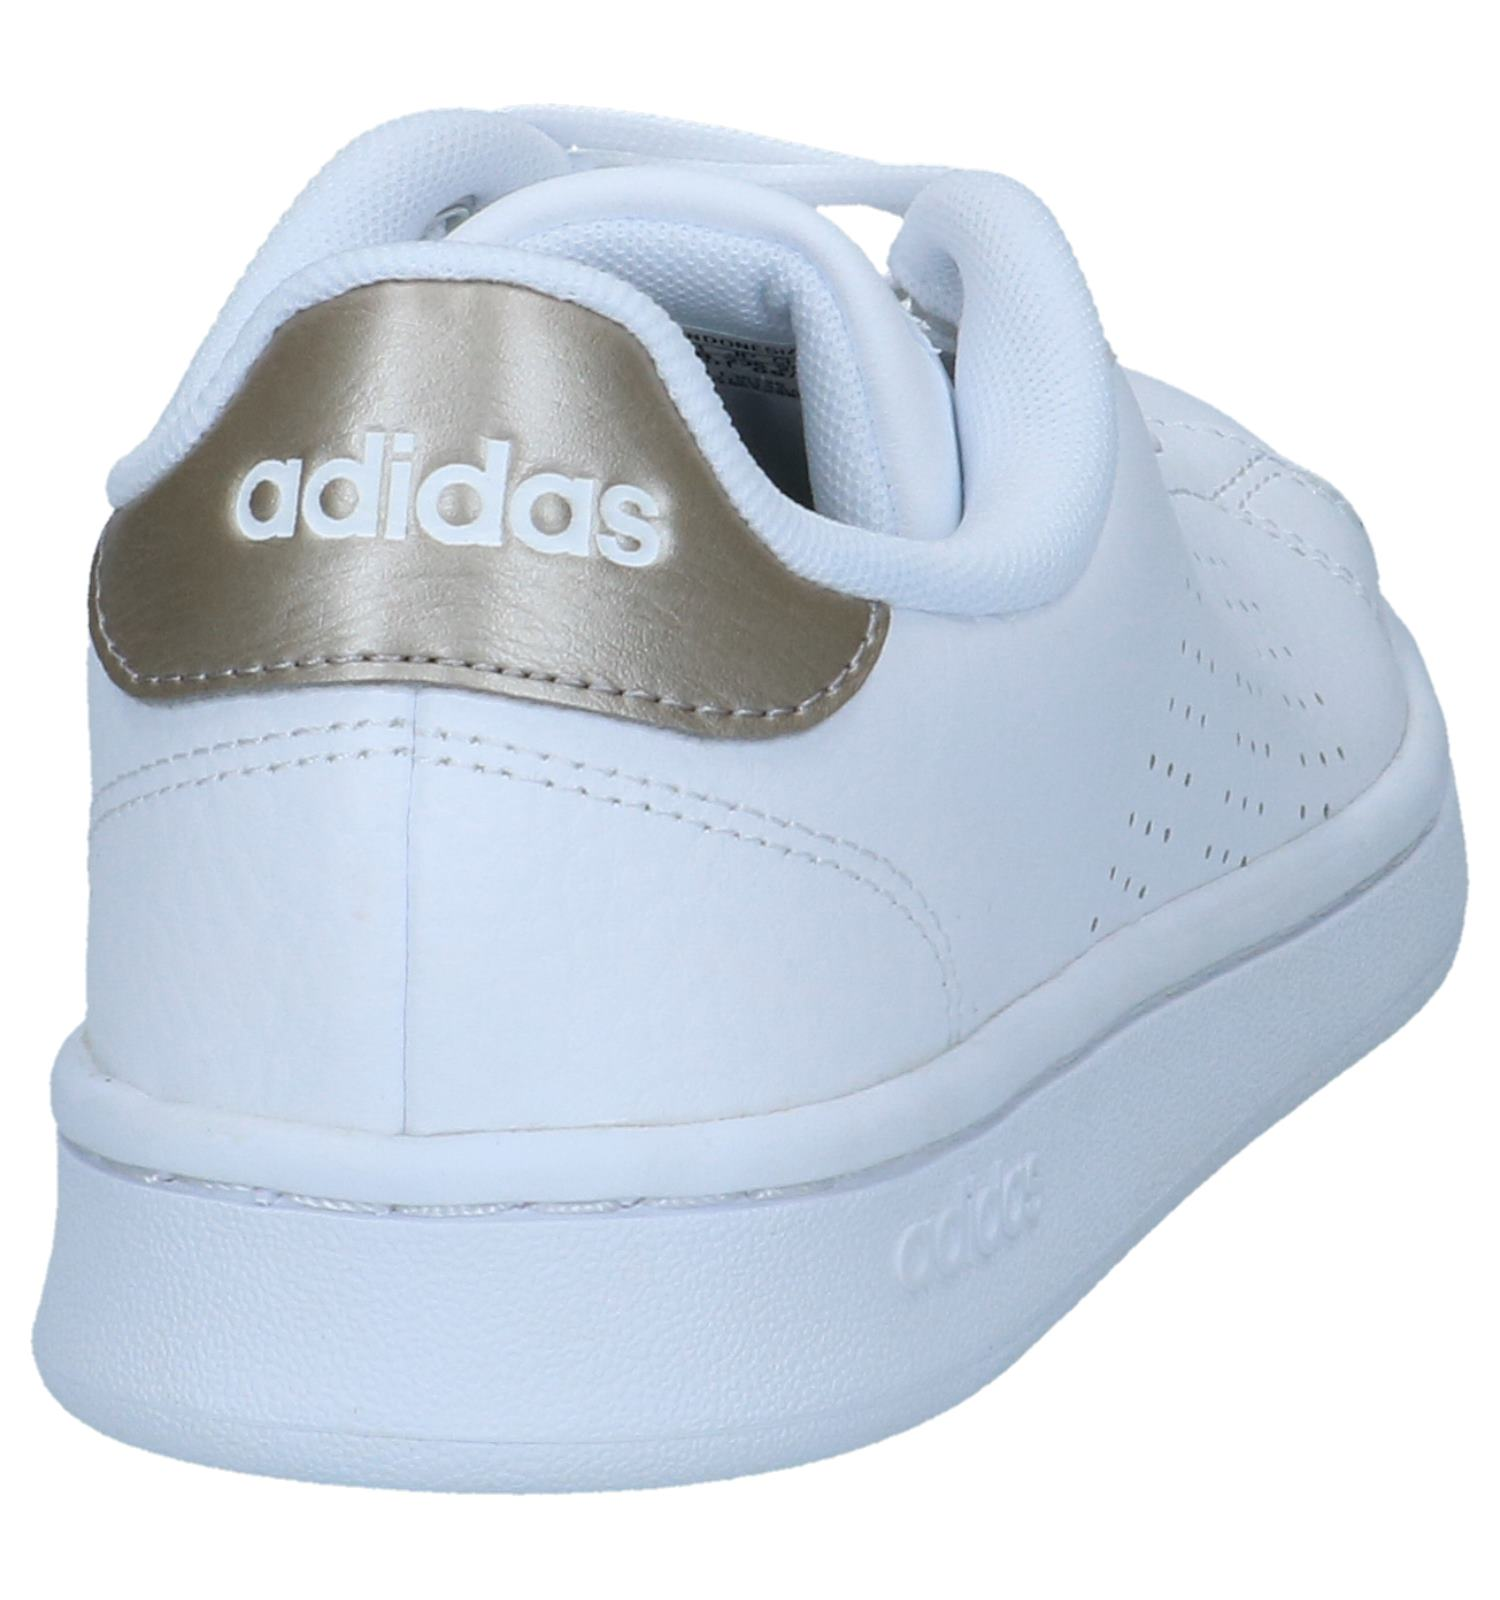 Cl Adidas Sneakers Witte Sneakers Cl Adidas Advantage Advantage Witte Adidas Advantage 2W9IHED